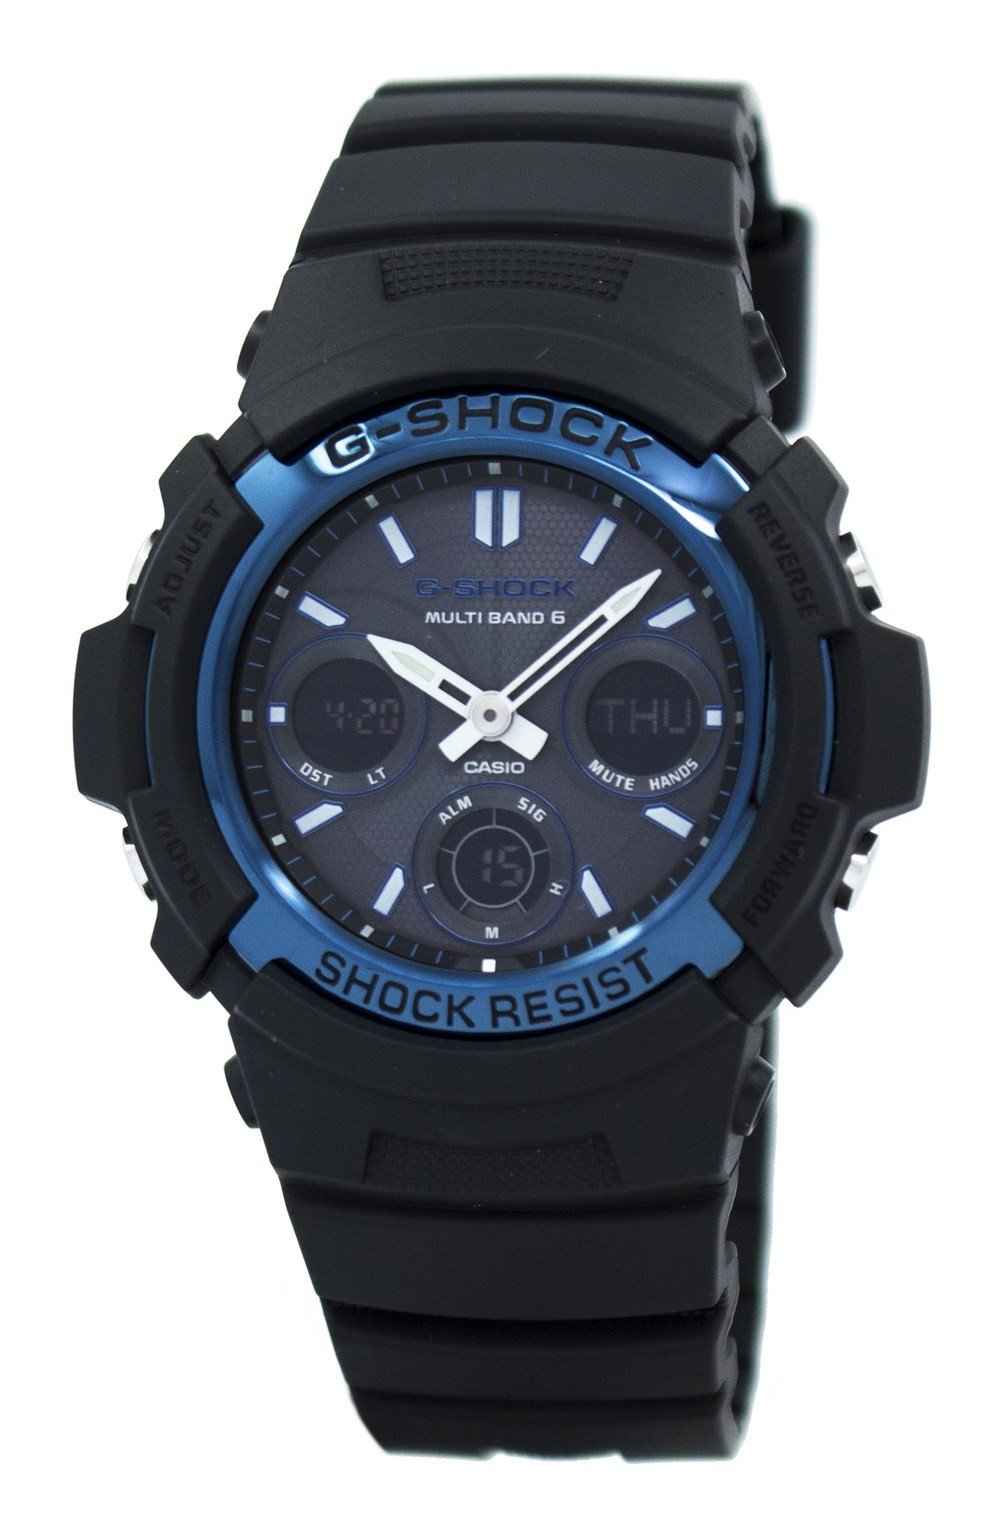 Casio G-Shock Atomic Multi Band 6 Analog-Digital AWG-M100A-1A Men's Watch